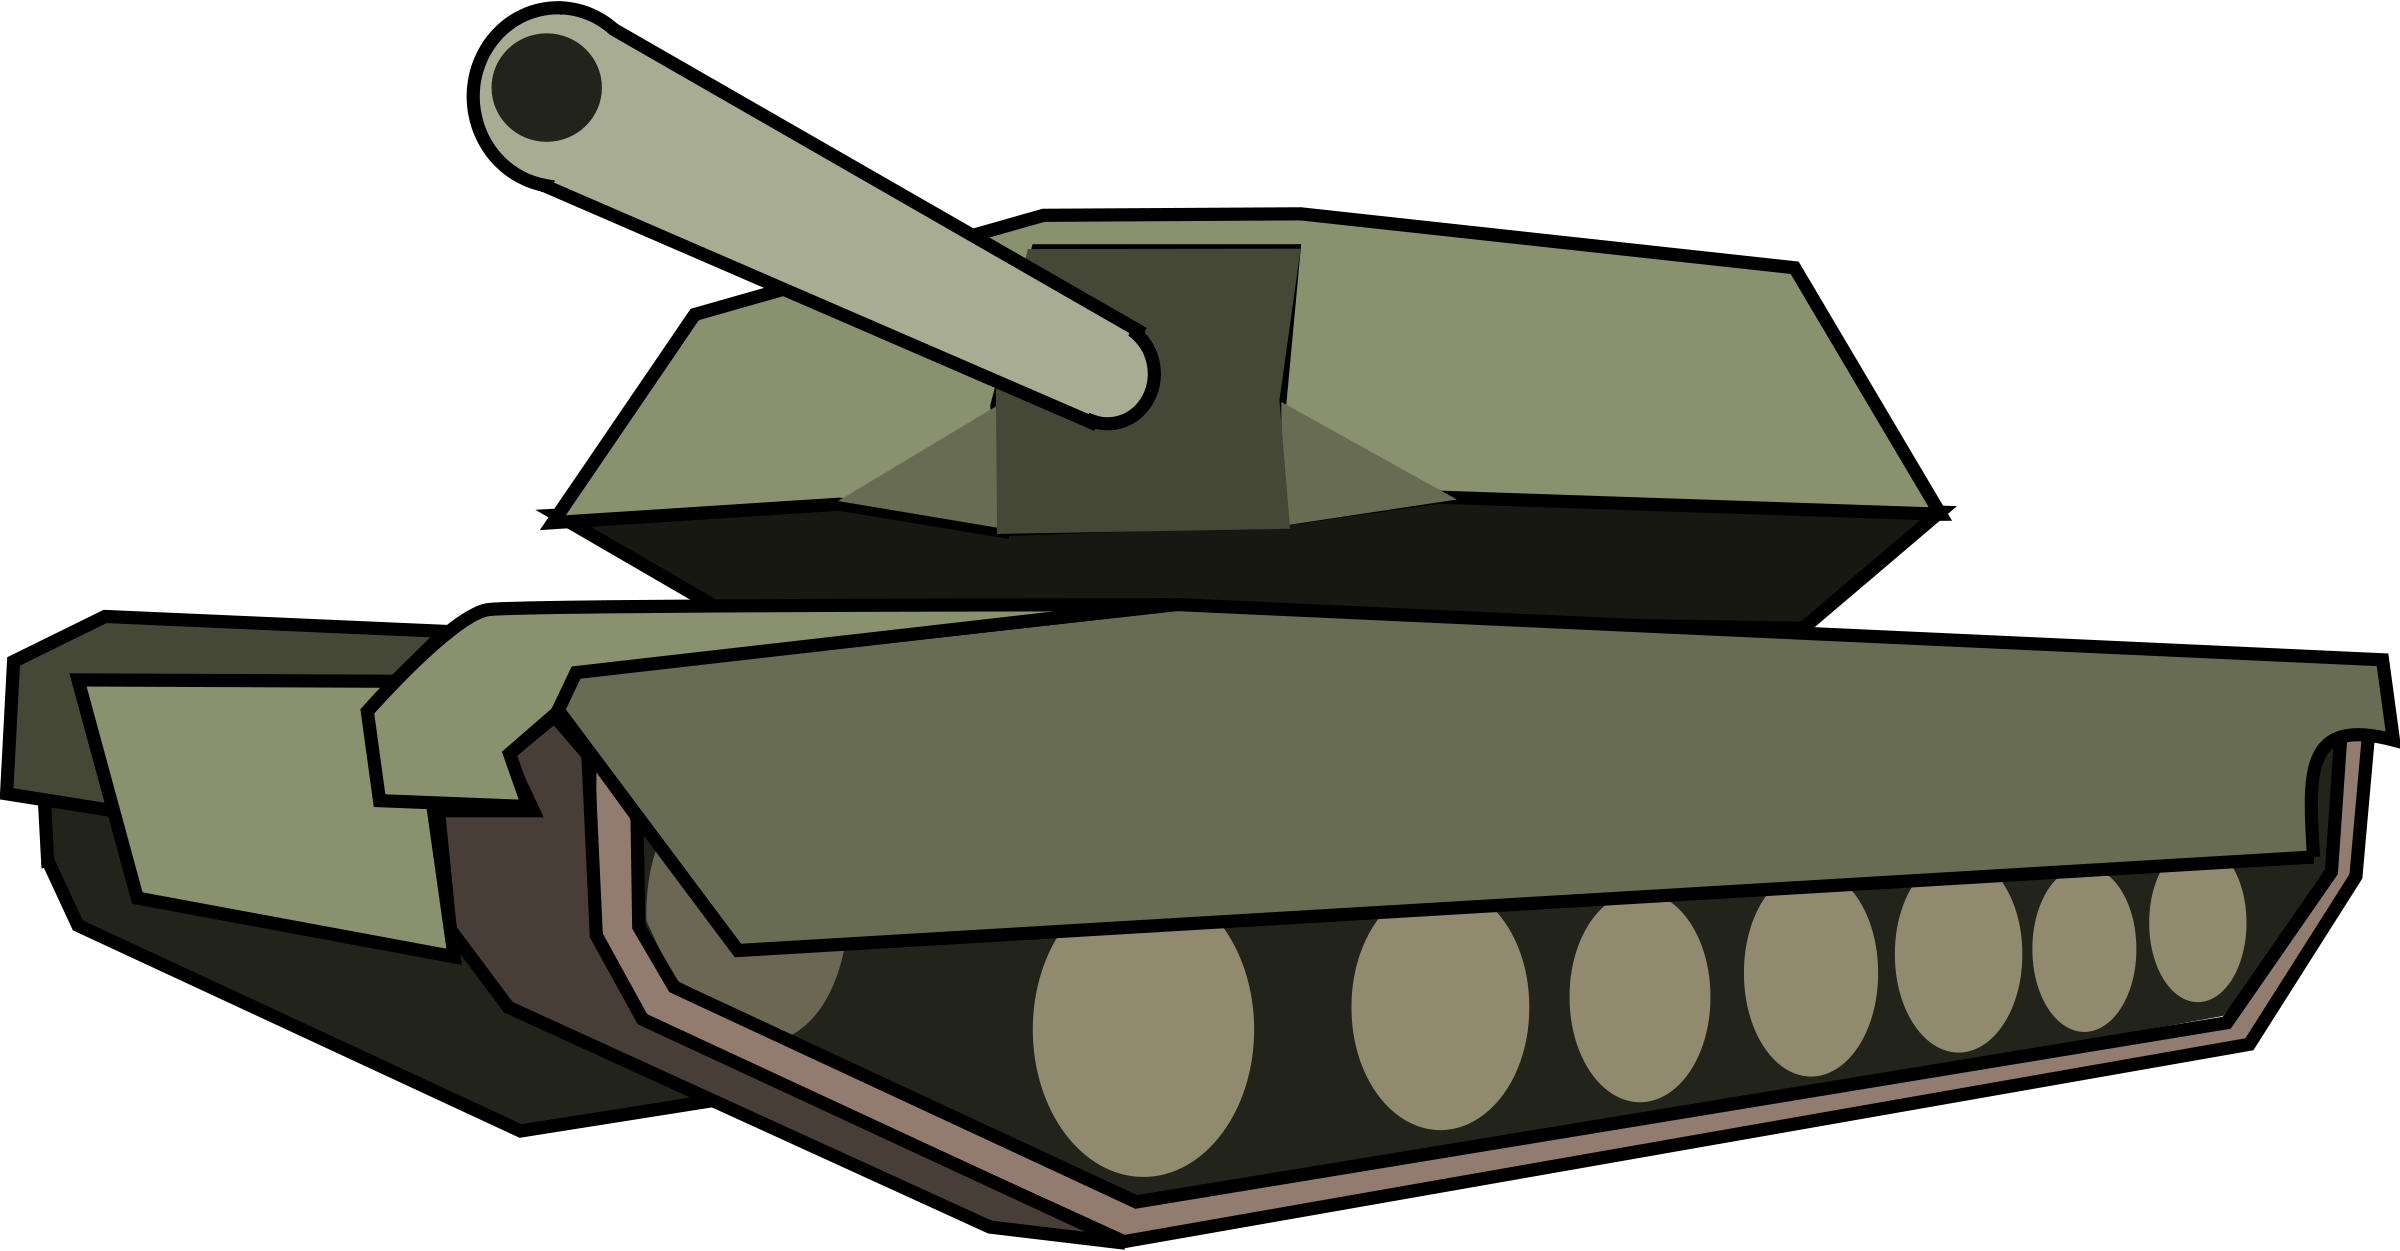 2400x1251 tank clipart parties and special events tank drawing, clip